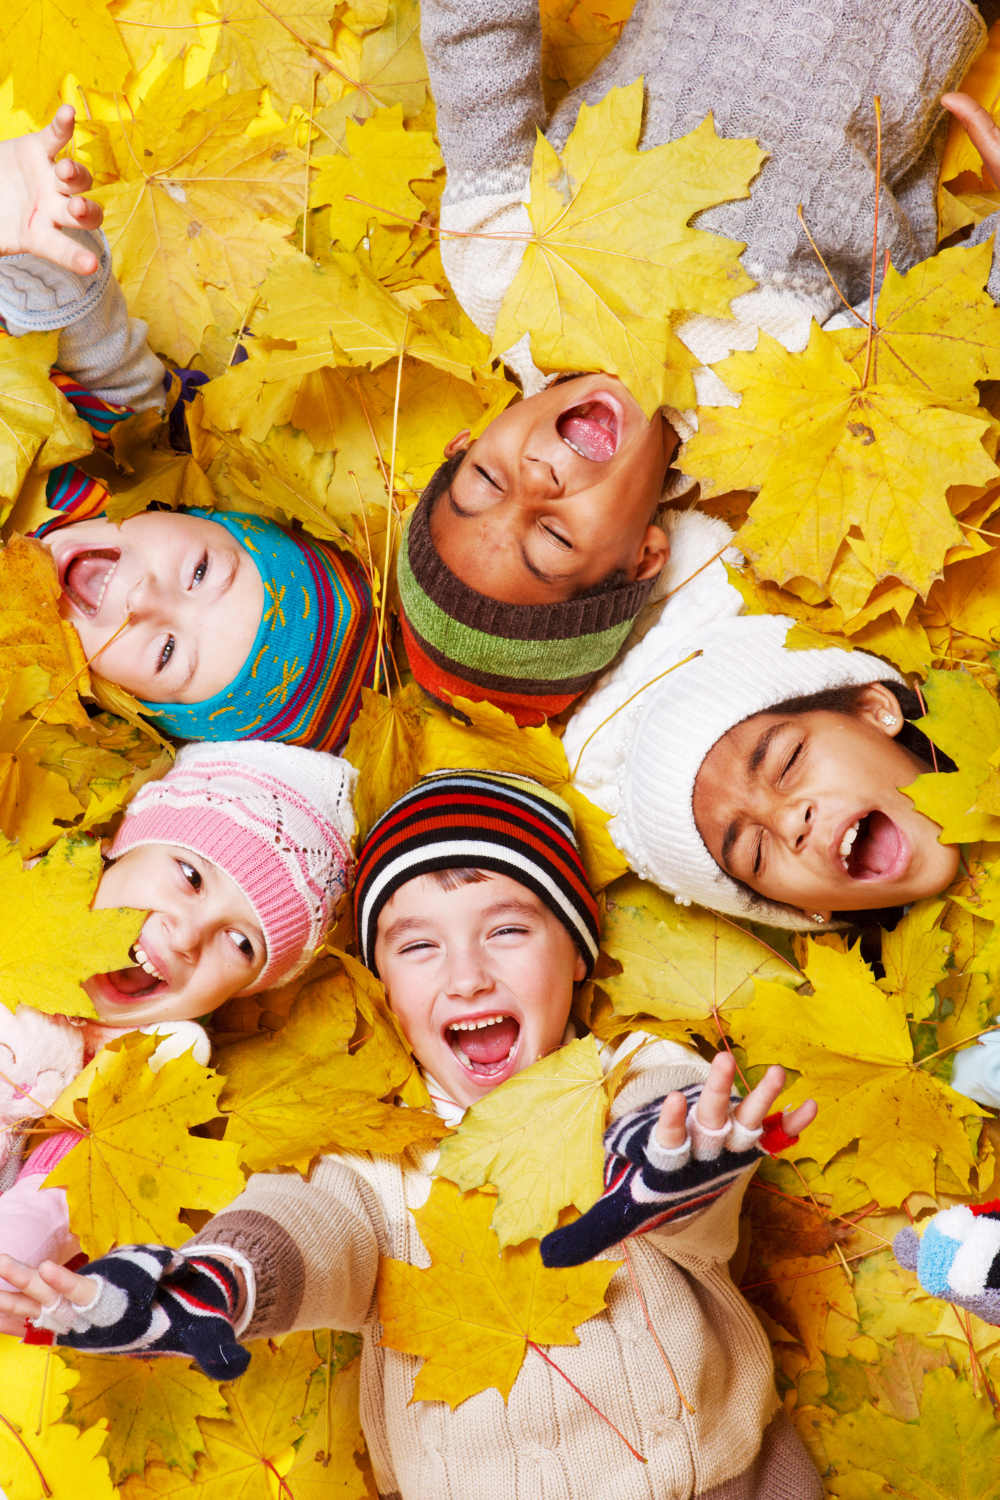 4 Key Foundations for Healthy and Happy Children